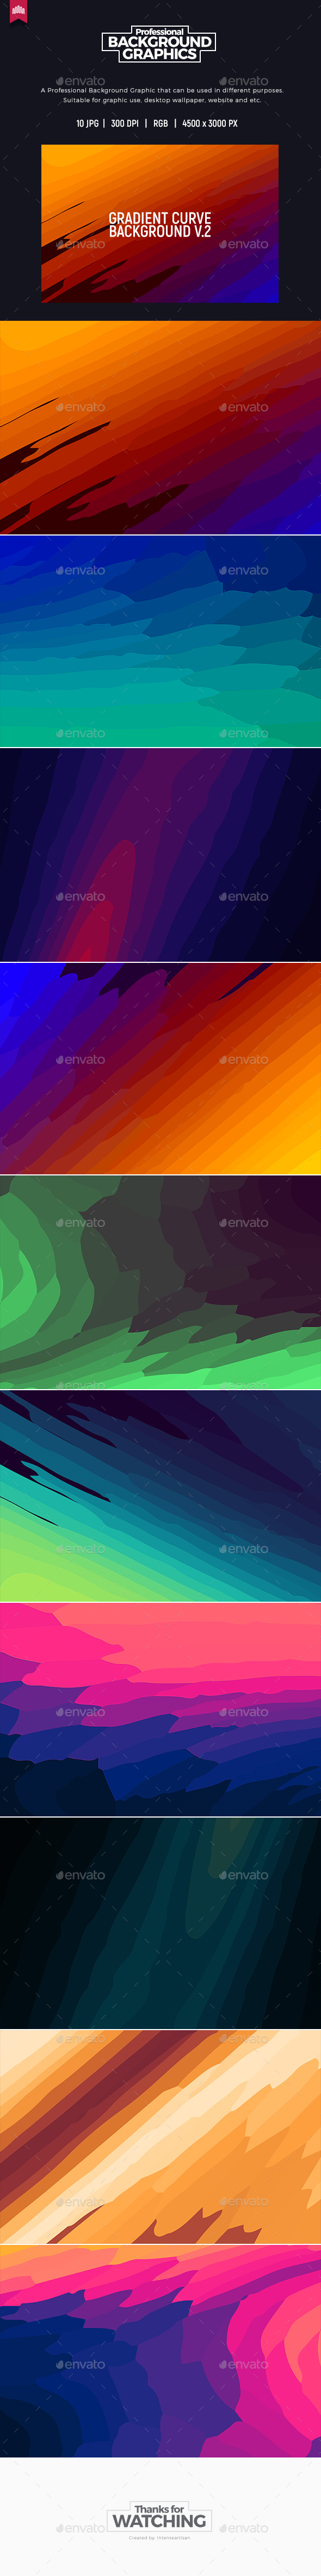 Gradient Curve V.2 - Background - Abstract Backgrounds